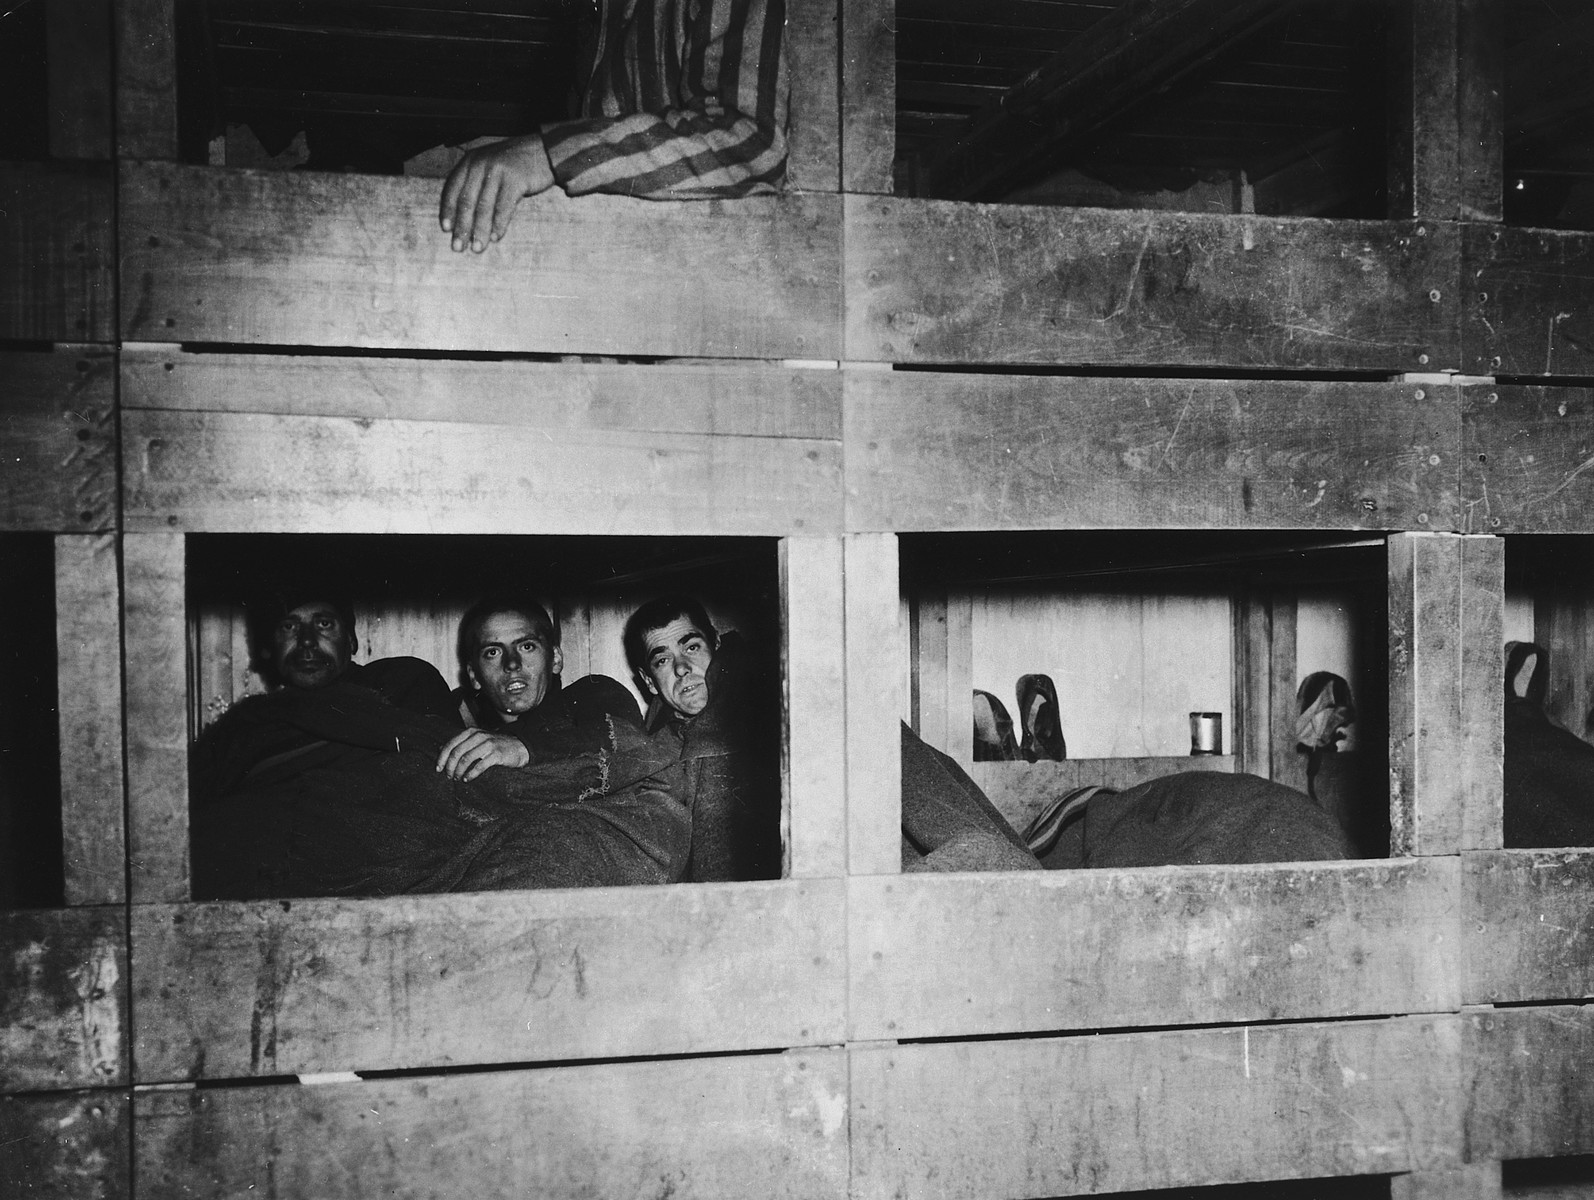 Survivors pose in their bunks in a barracks of the Dachau concentration camp.